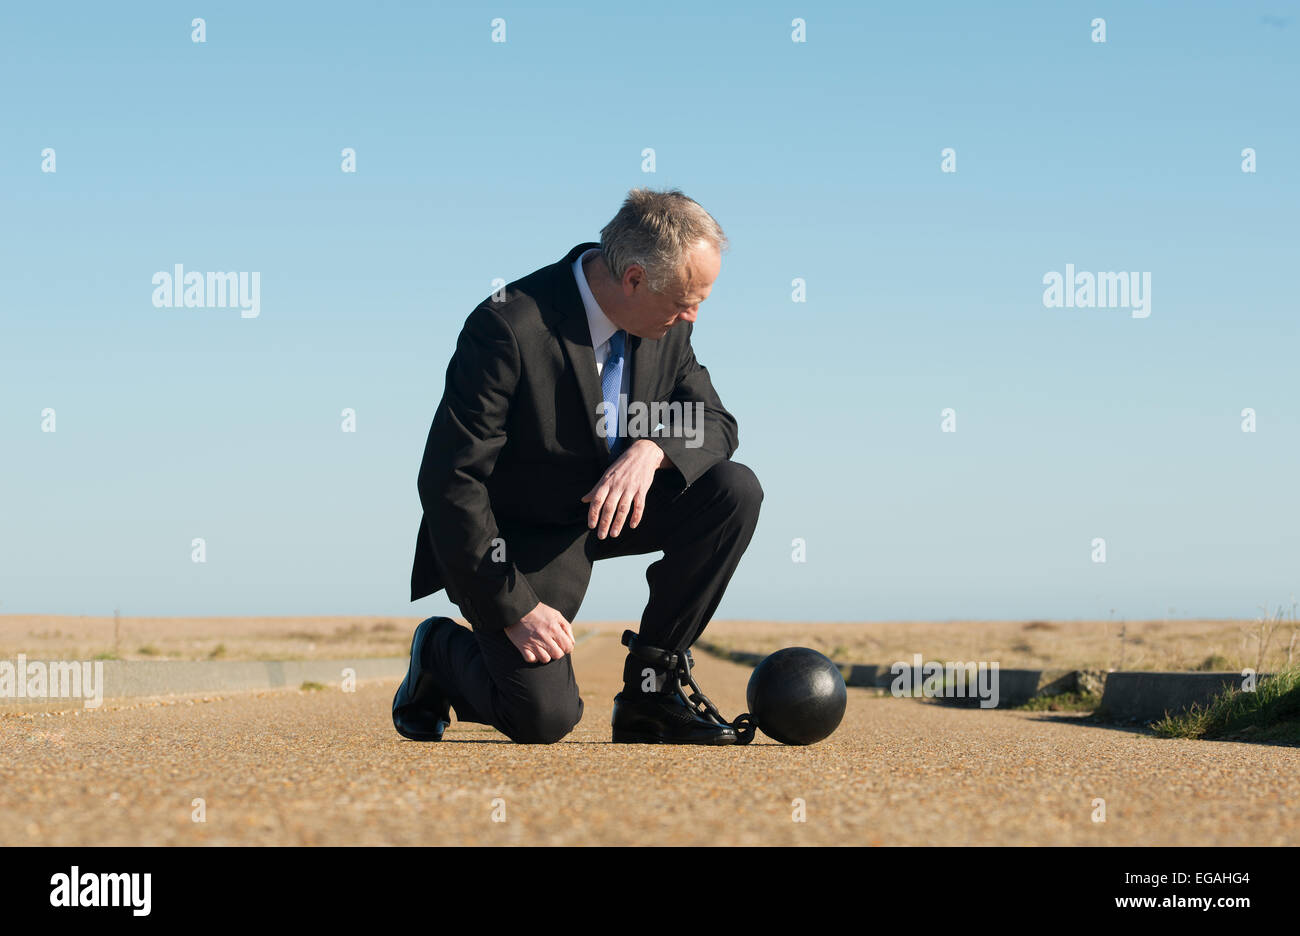 Pensive businessman, kneeling in the middle of a long remote road, attached to a ball & chain against a clear - Stock Image